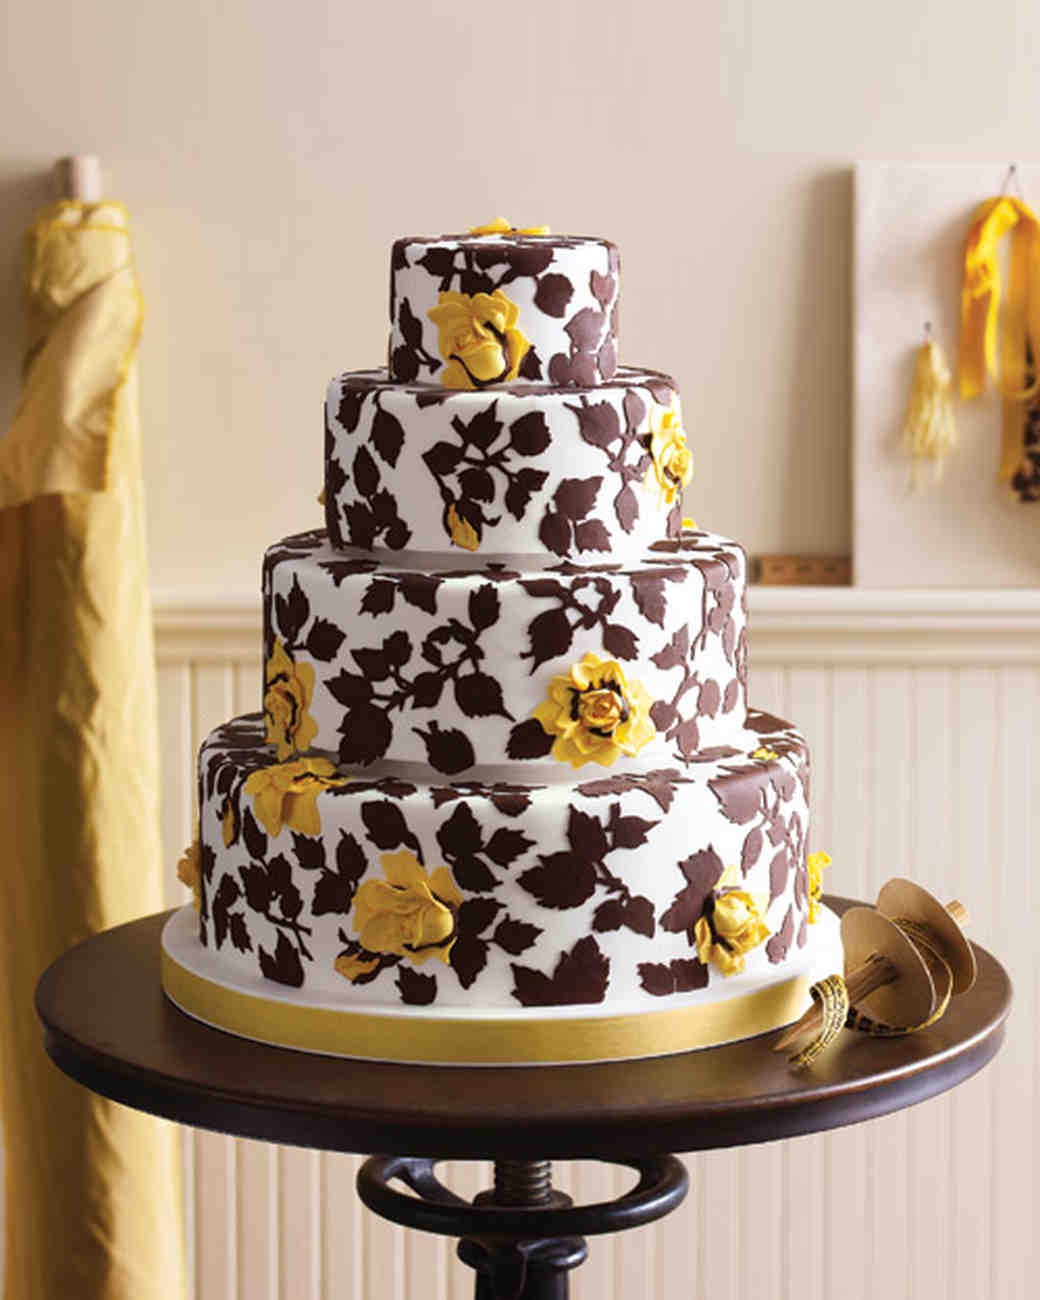 Brown, White, and Yellow Wedding Cake